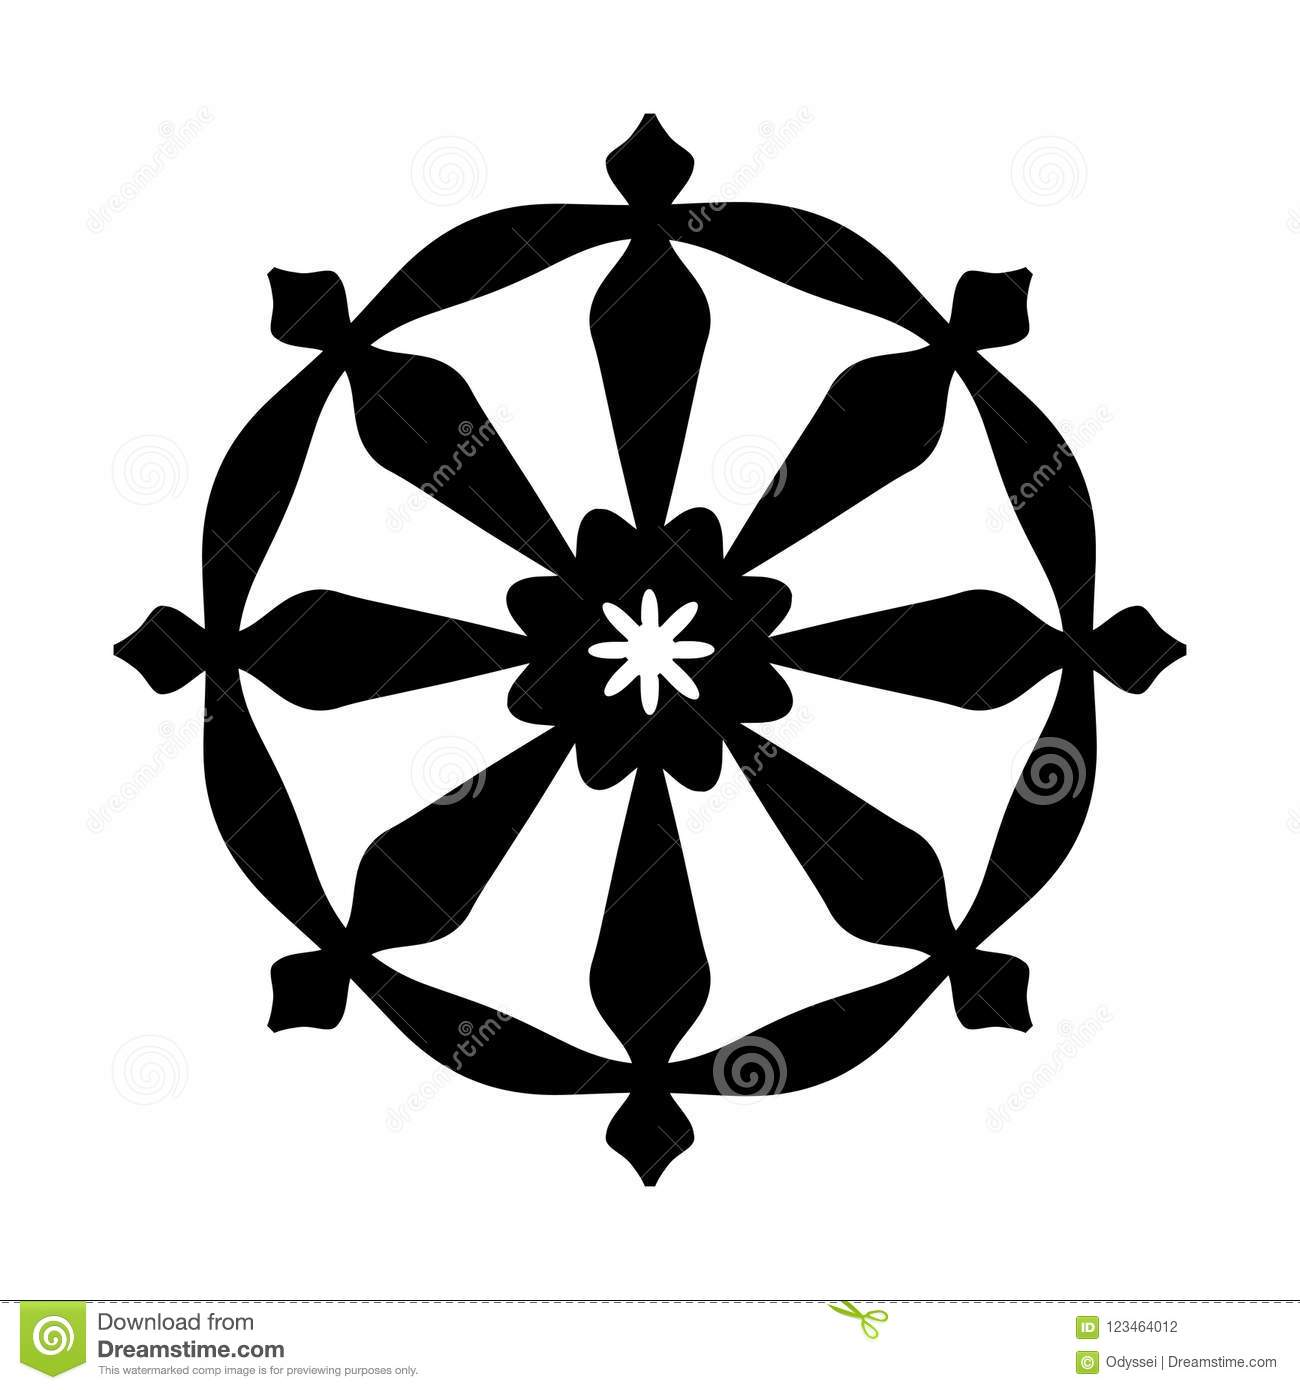 Wheel Of Samsara Symbol Of Reincarnation The Cycle Of Death And